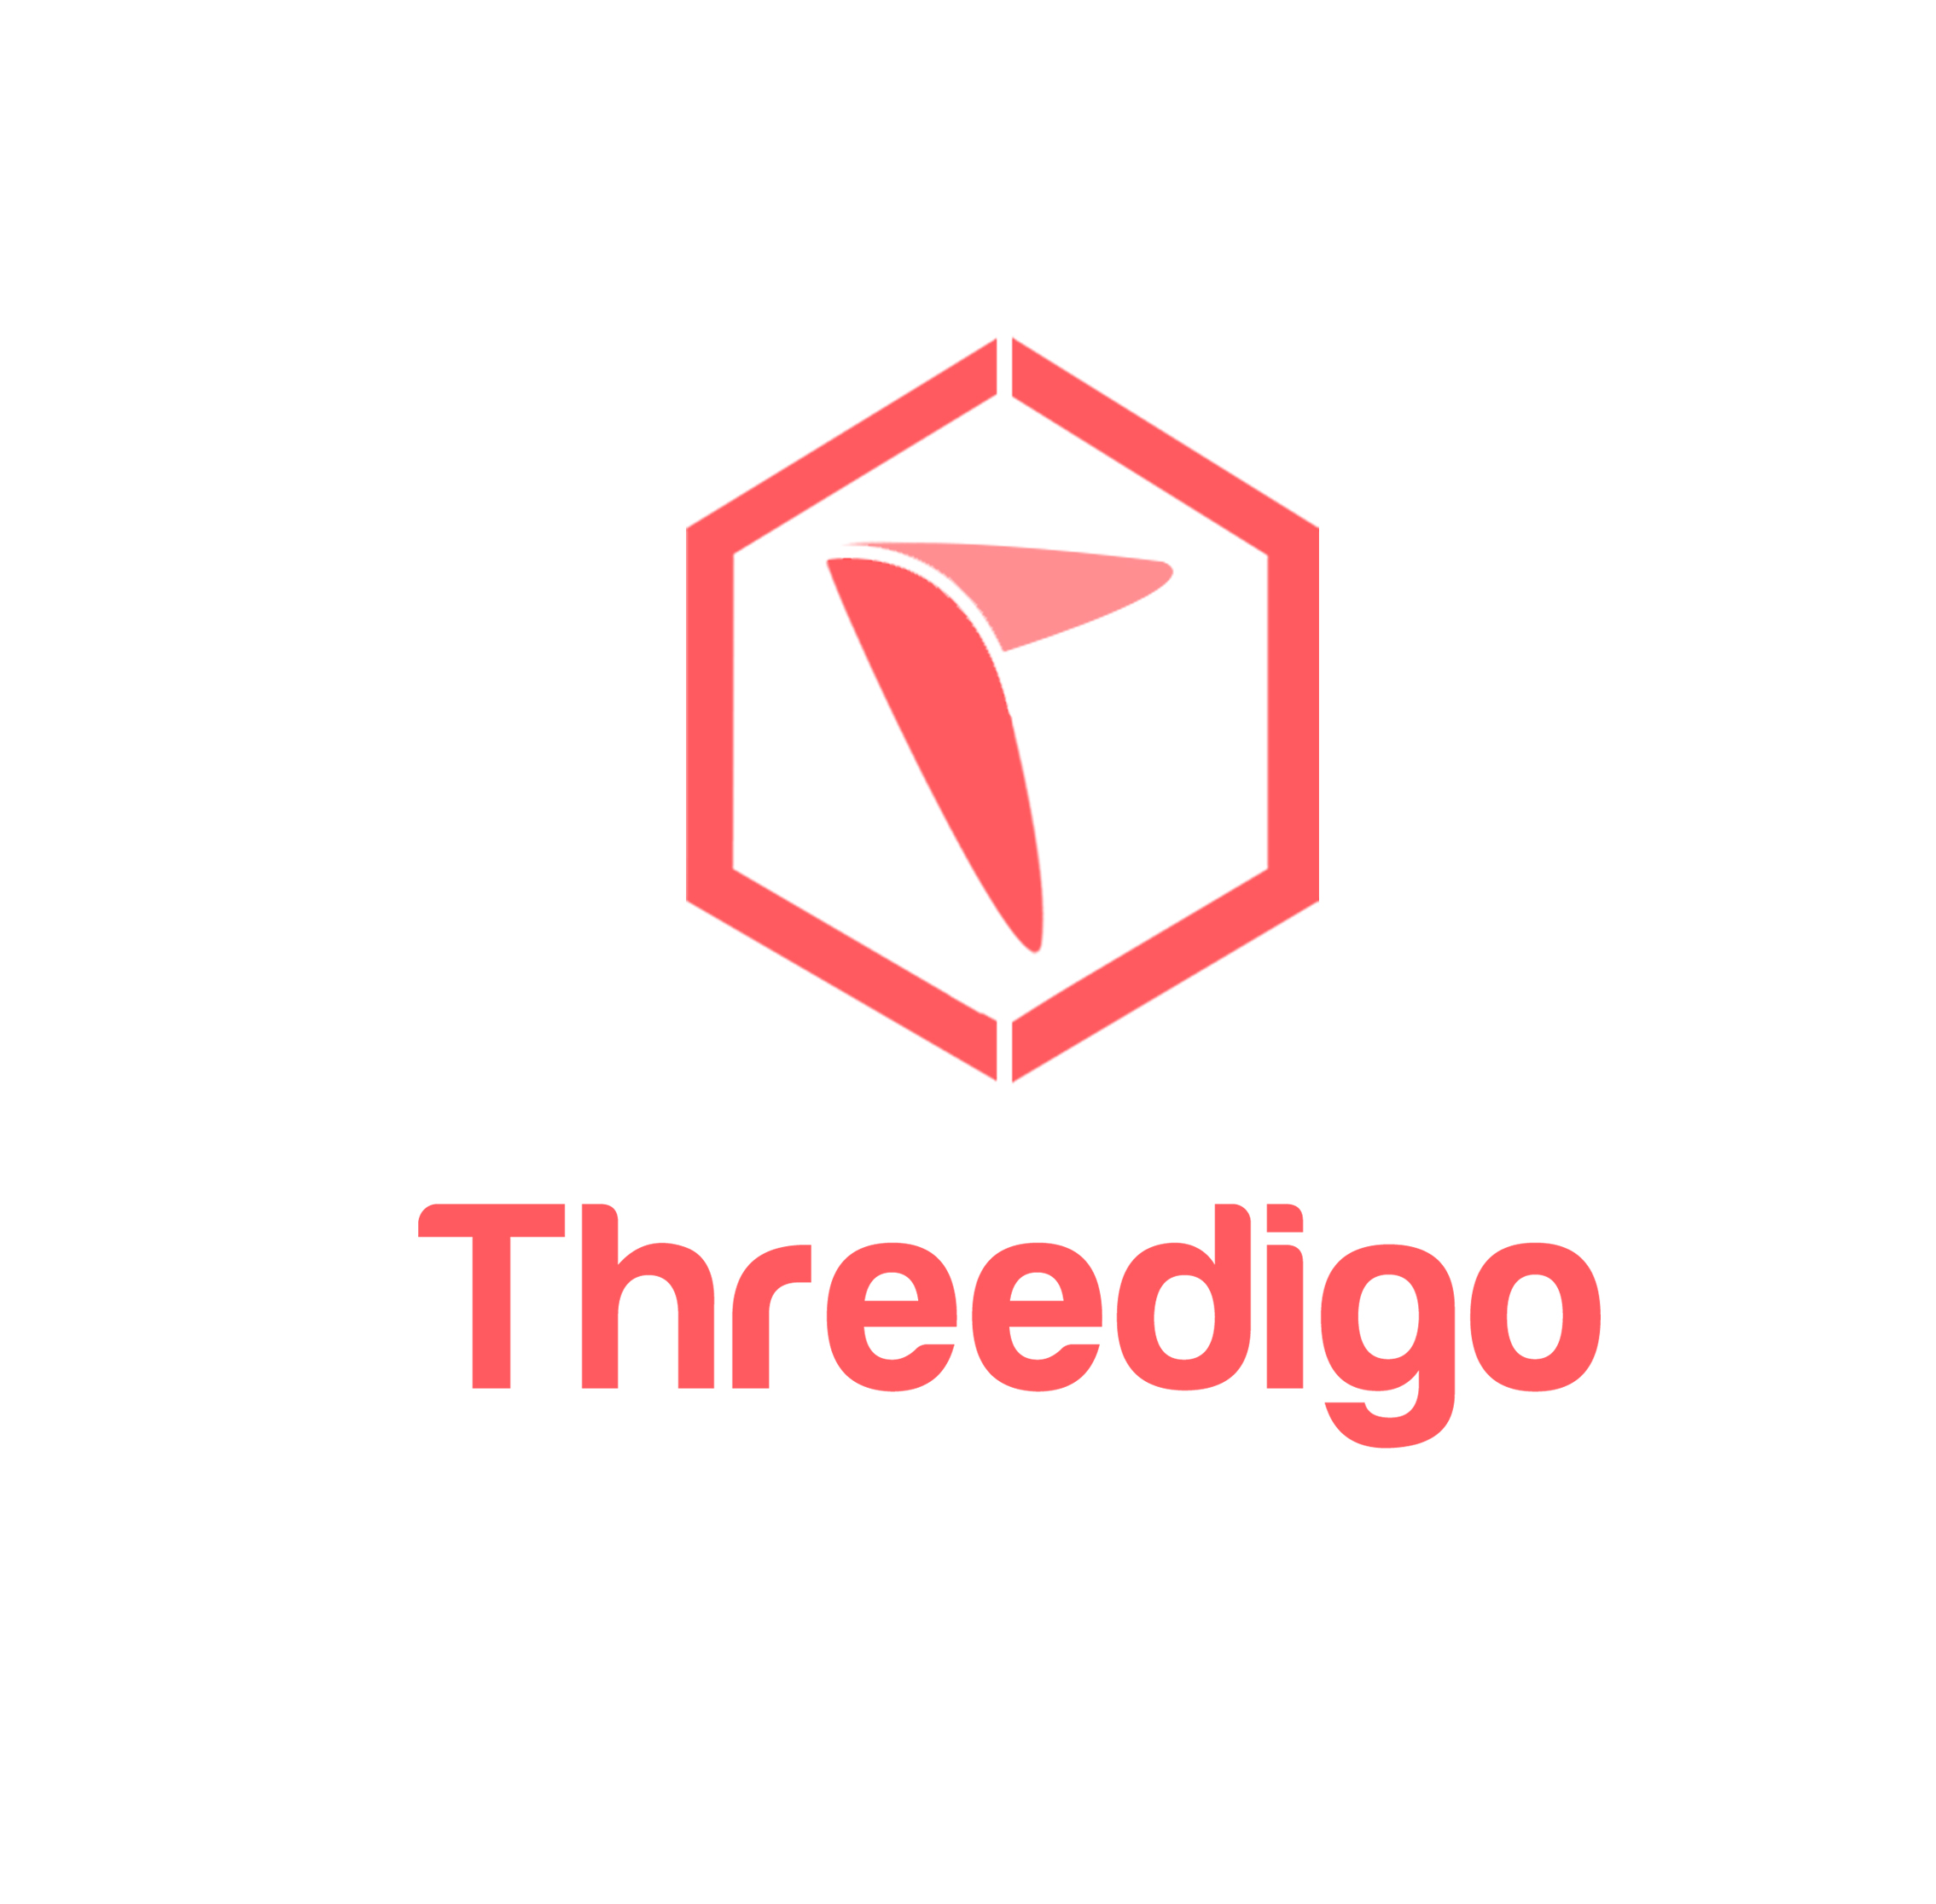 threedigologorosa-v2